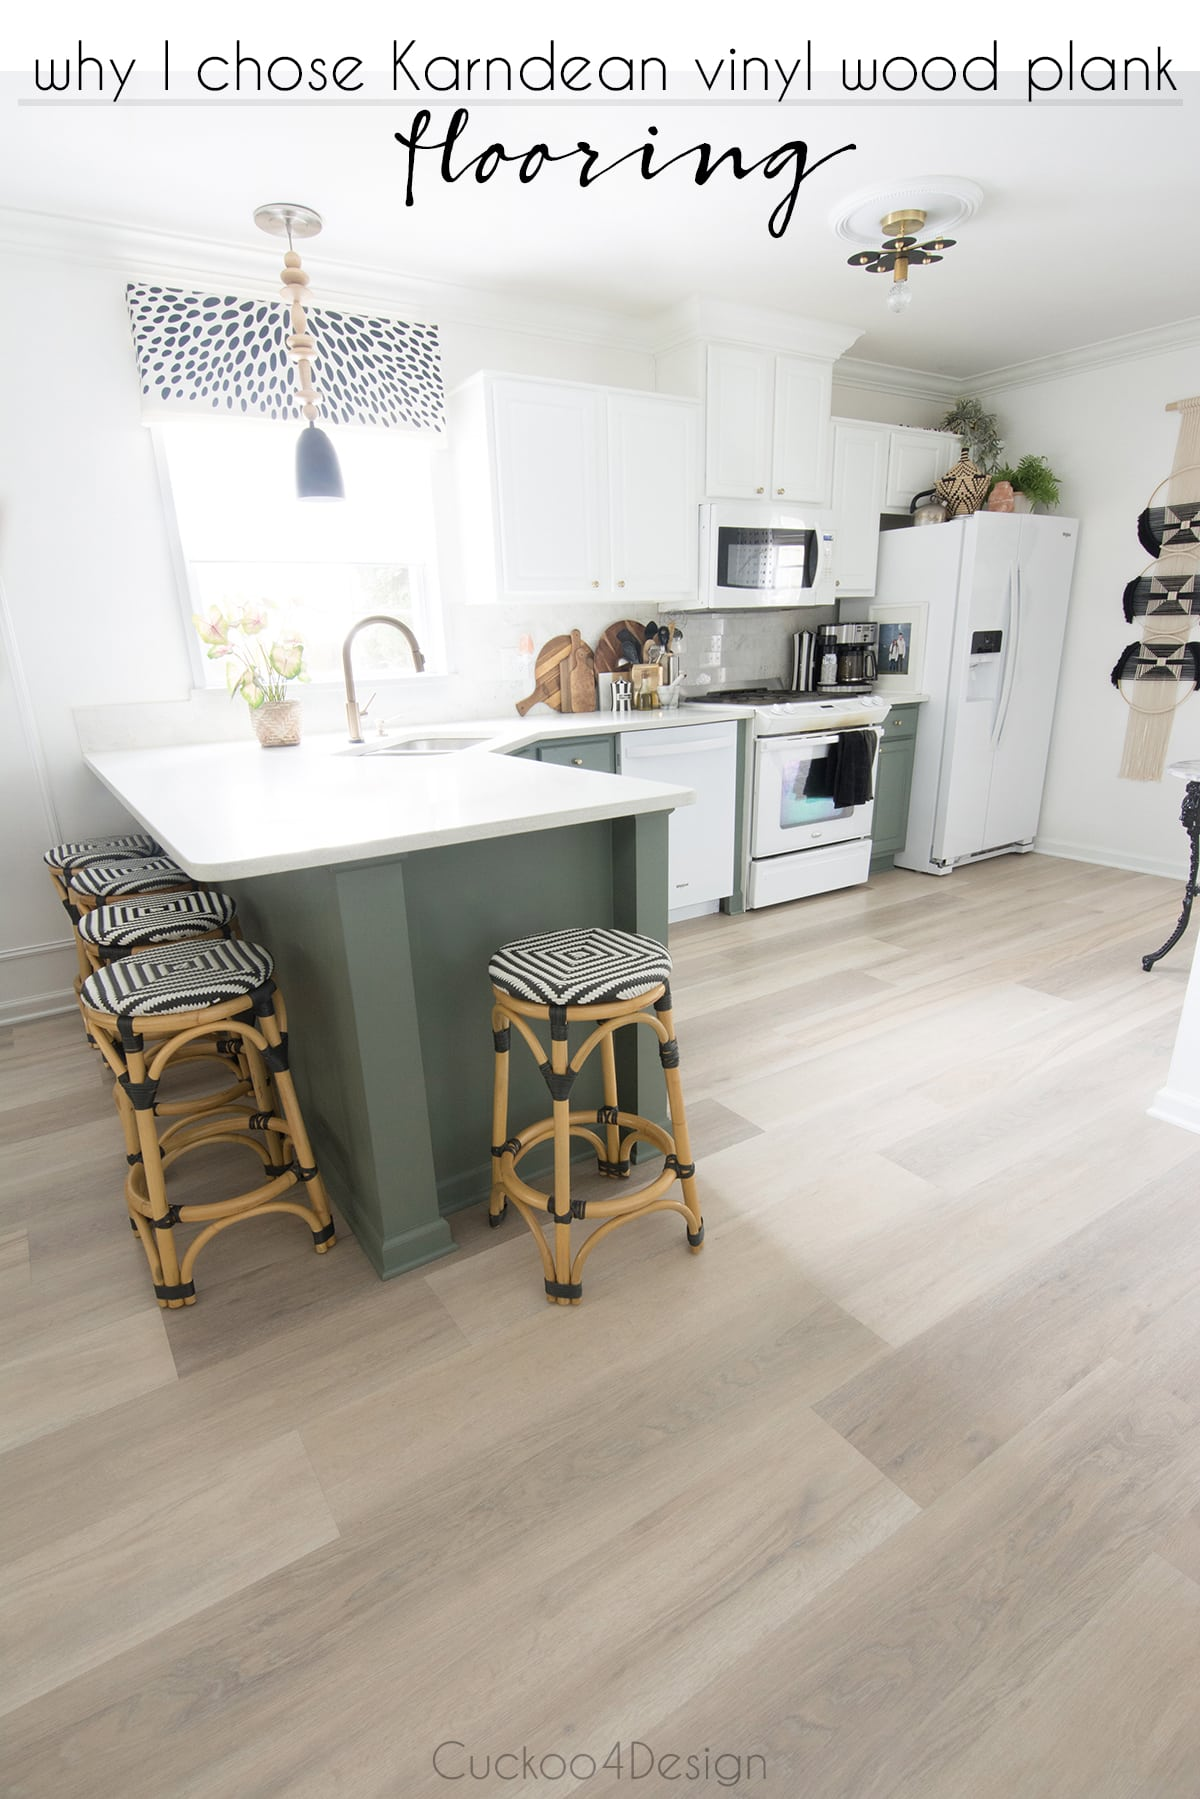 why I chose Karndean vinyl wood plank flooring for our entire main floor